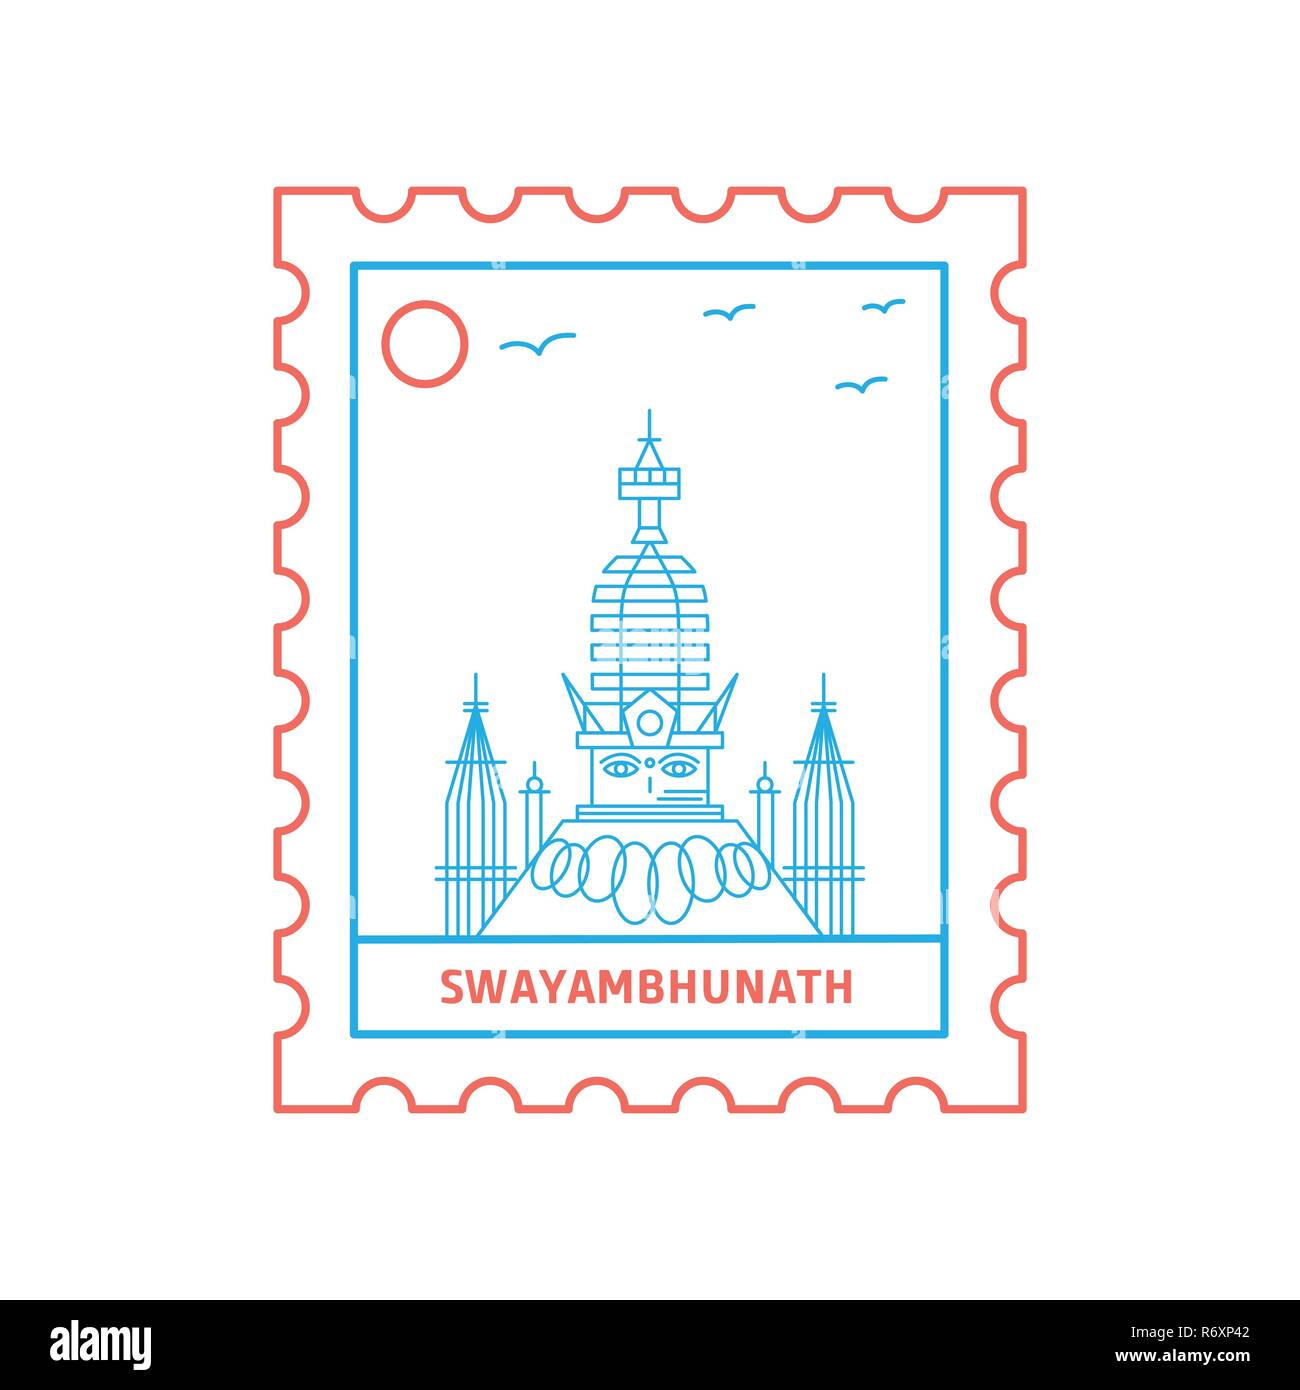 SWAYAMBHUNATH postage stamp Blue and red Line Style, vector illustration - Stock Image